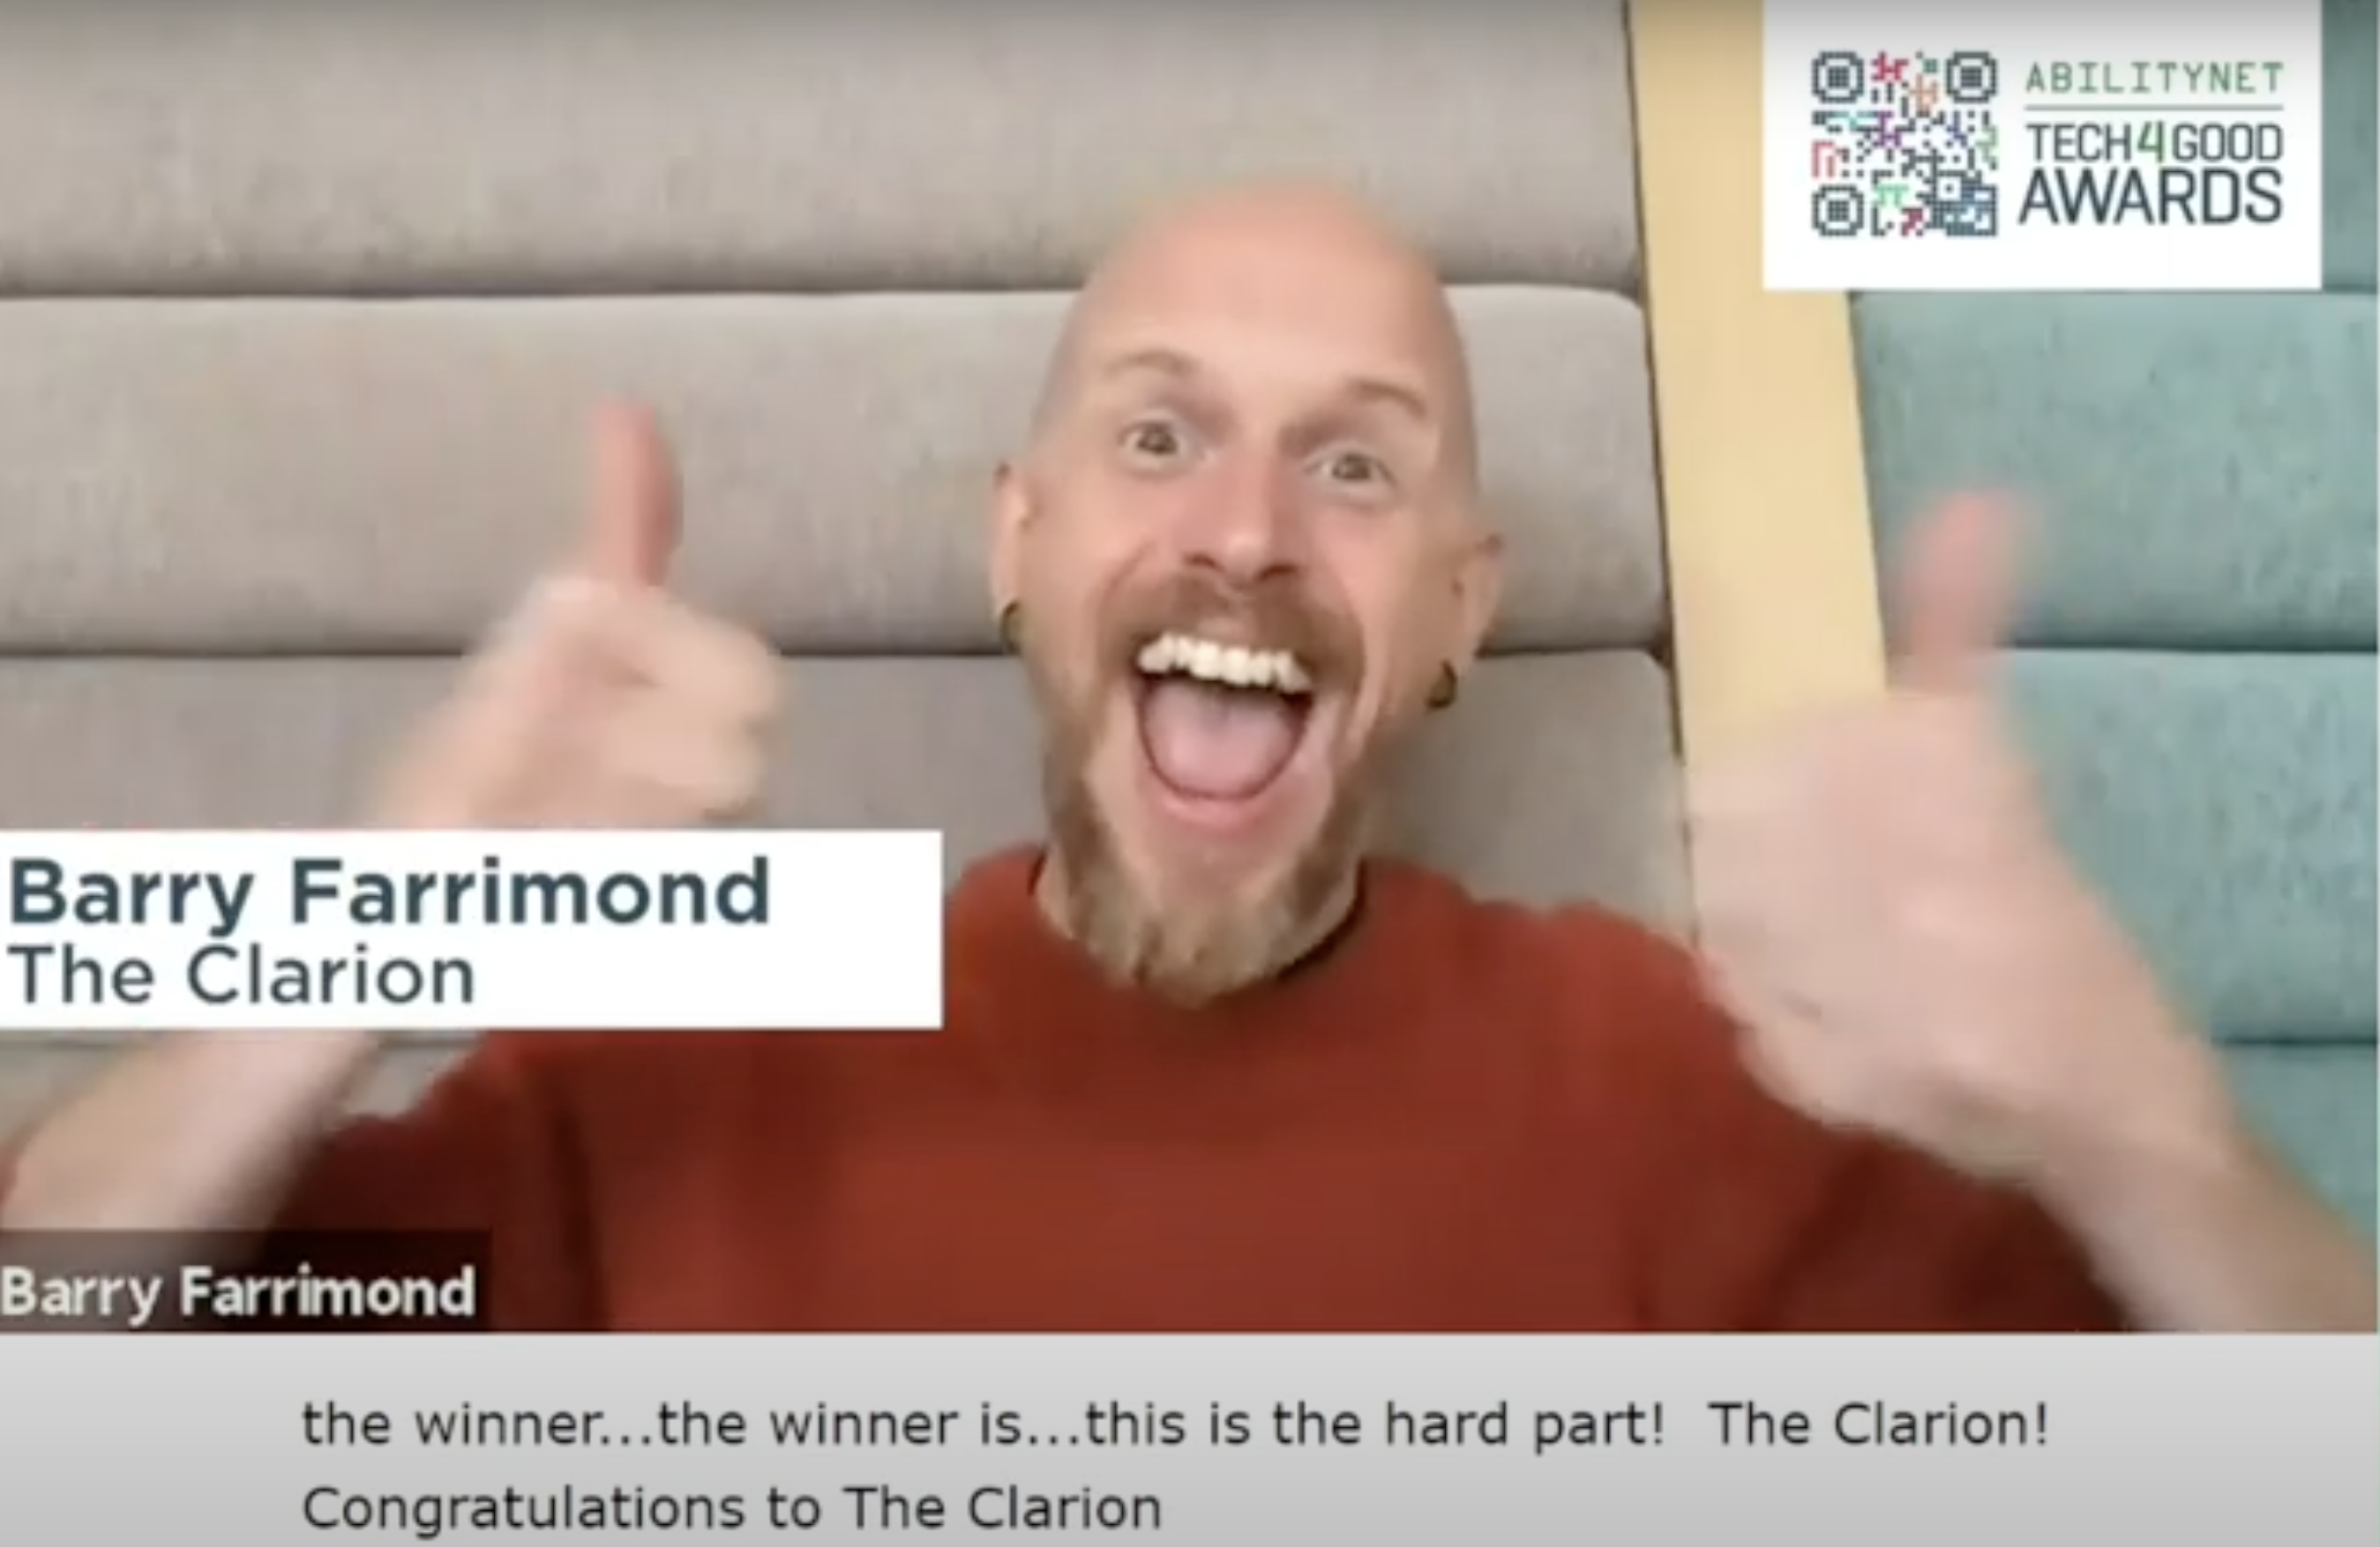 Image of Barry Farrimond of The Clarion smiling, reacting to winning the Tech4Good Accessibility Award